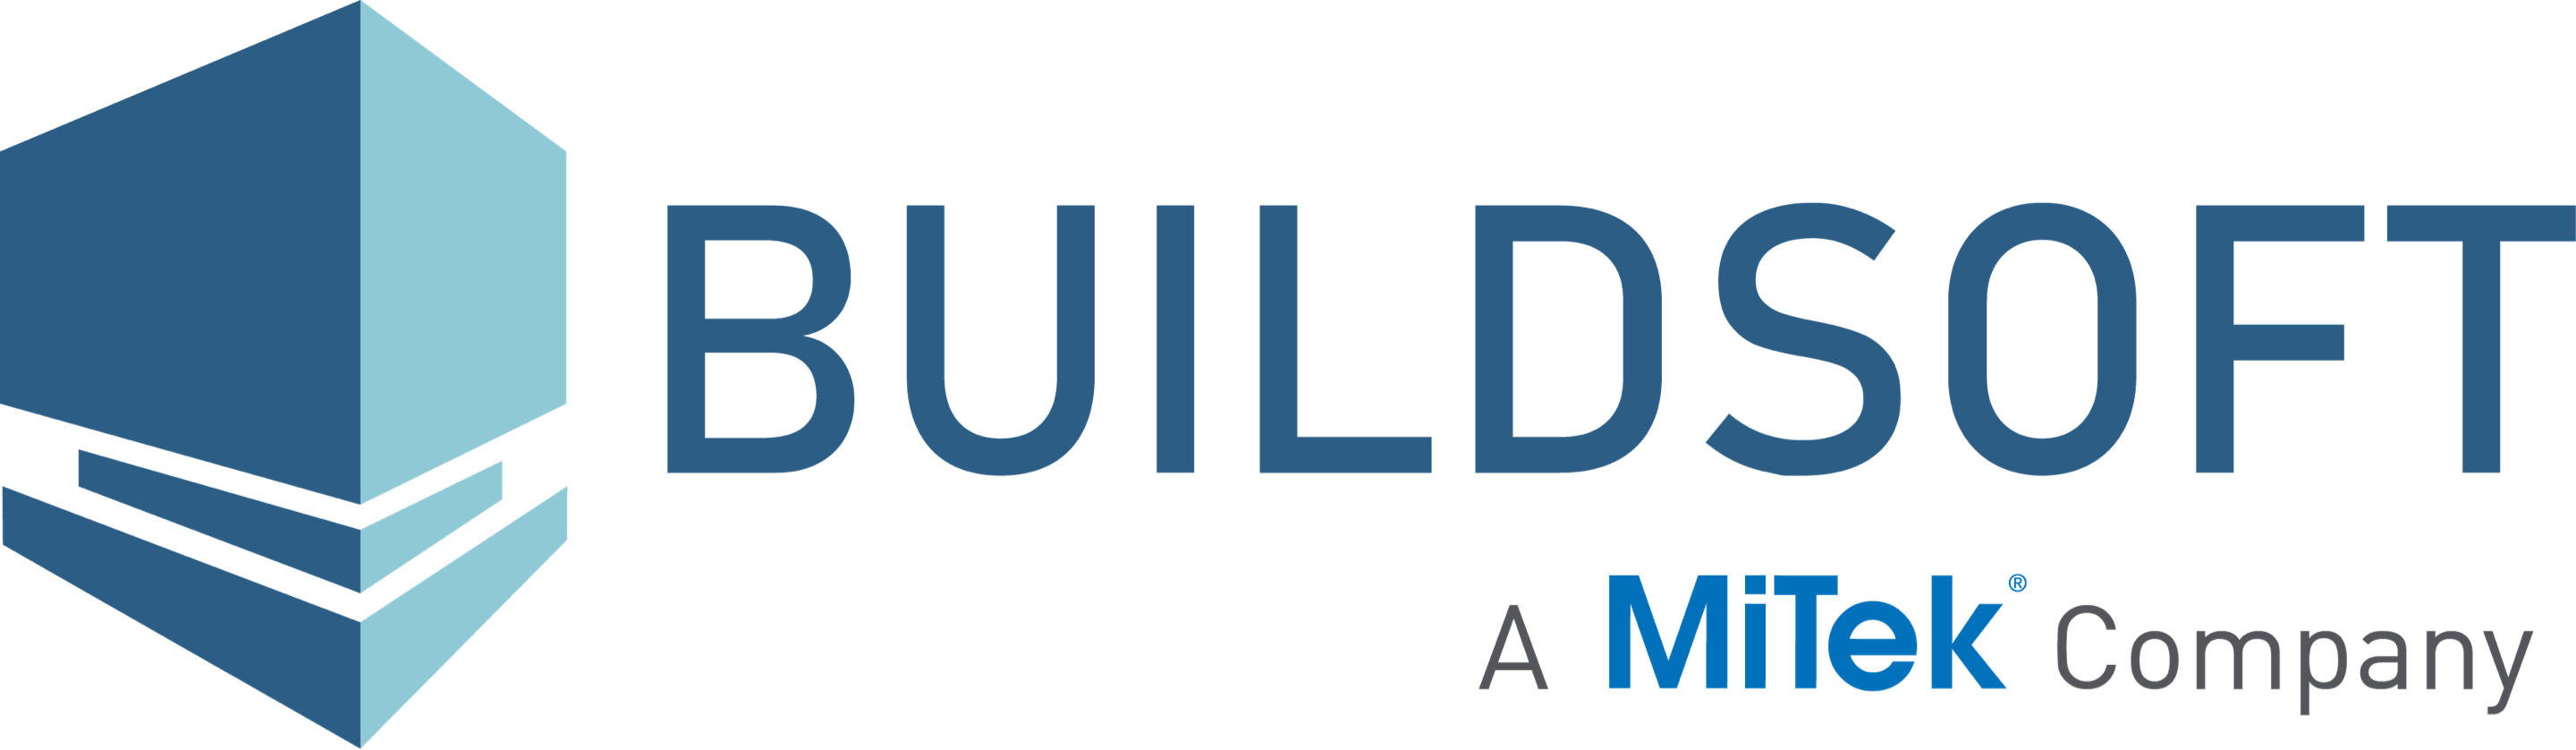 Buildsoft+-+A+MiTek+Company+-+Colour+Logo+(1)